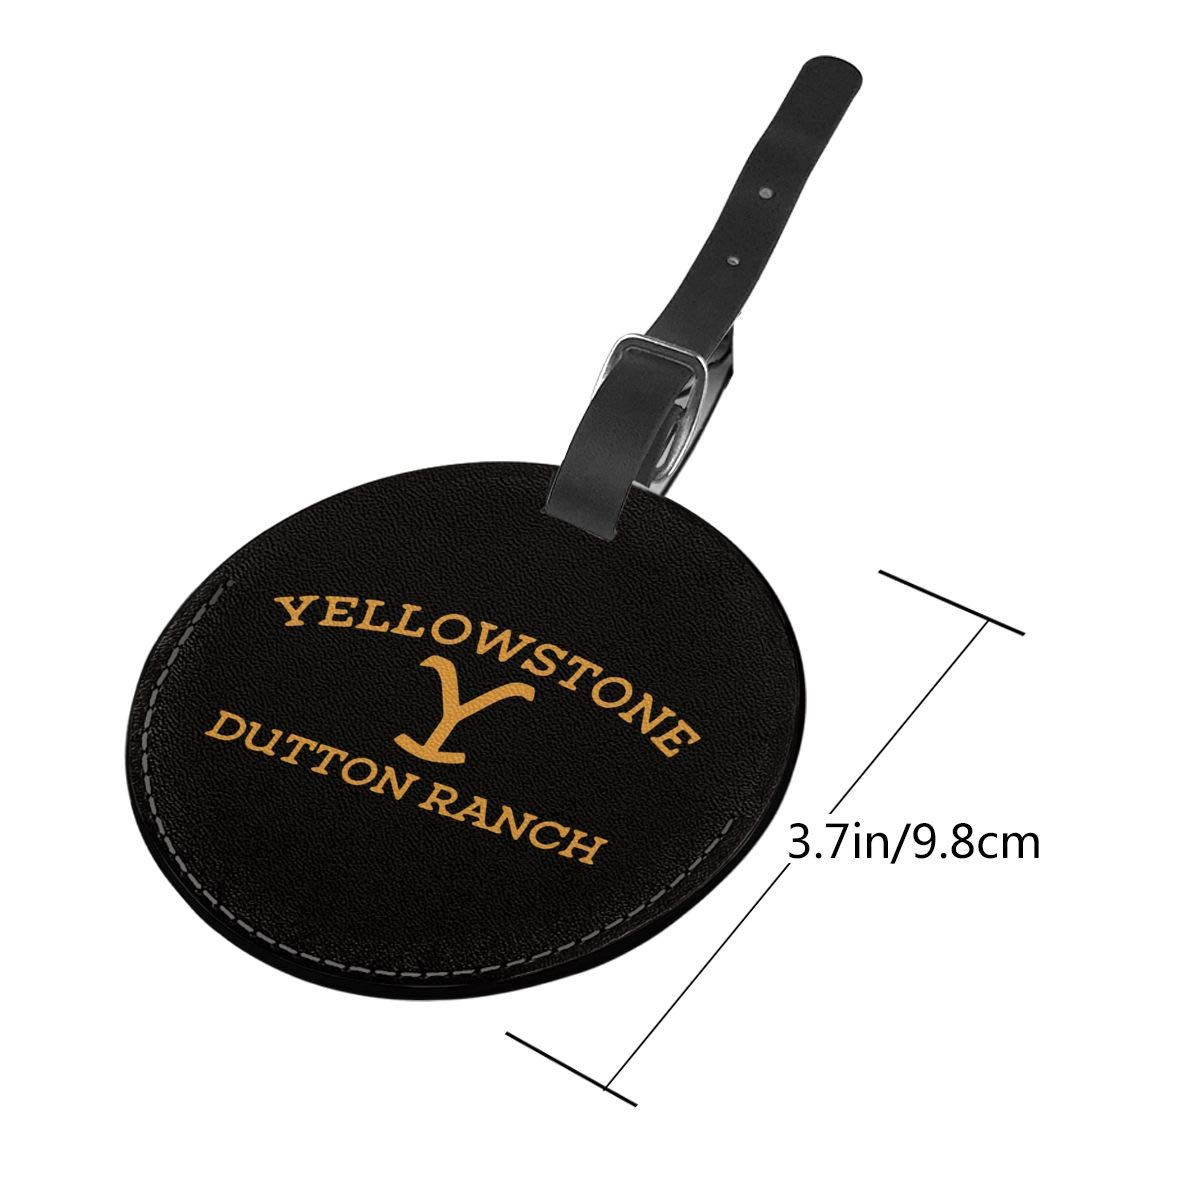 Yellowstone/ Dutton/ Ranch Travel Leather Round Luggage Tags Suitcase Labels Bag